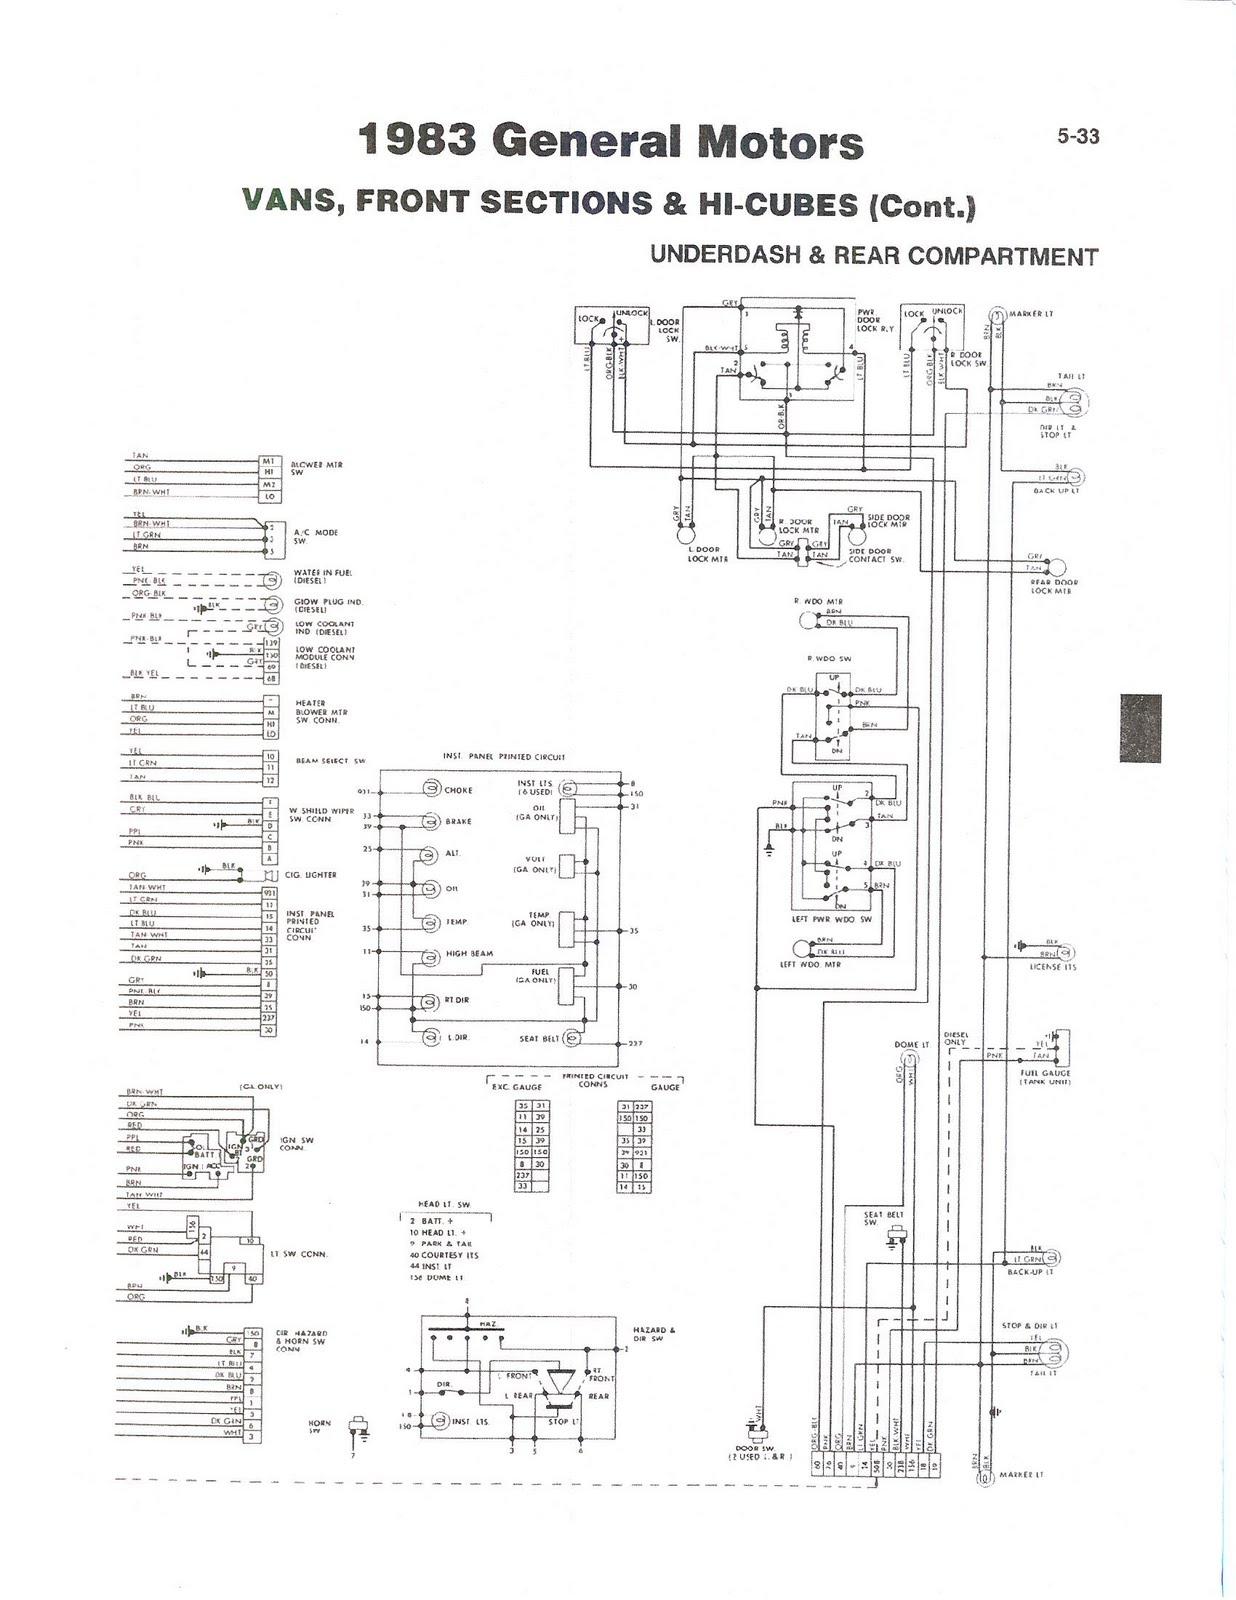 Chevy Express Van Wiring Diagram Library. 1983 Fleetwood Pace Arrow Owners Manuals Wireing Diagram 1999 Chevy Express Van Wiring 2003. Wiring. 2006 Fleetwood Bounder Motorhome Schematic At Scoala.co